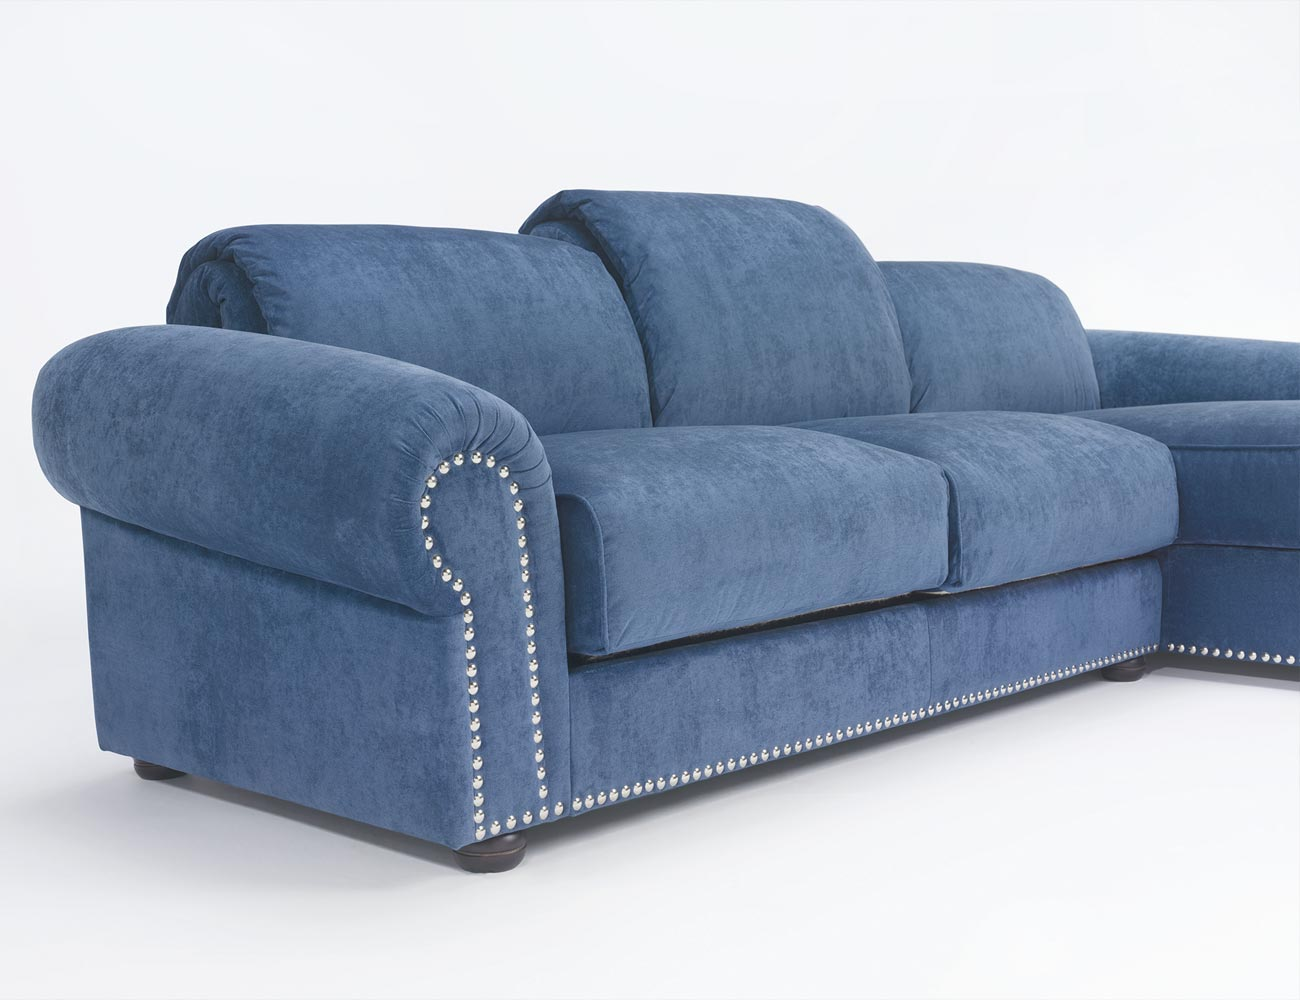 Sofa chaiselongue gran lujo decorativo azul 18